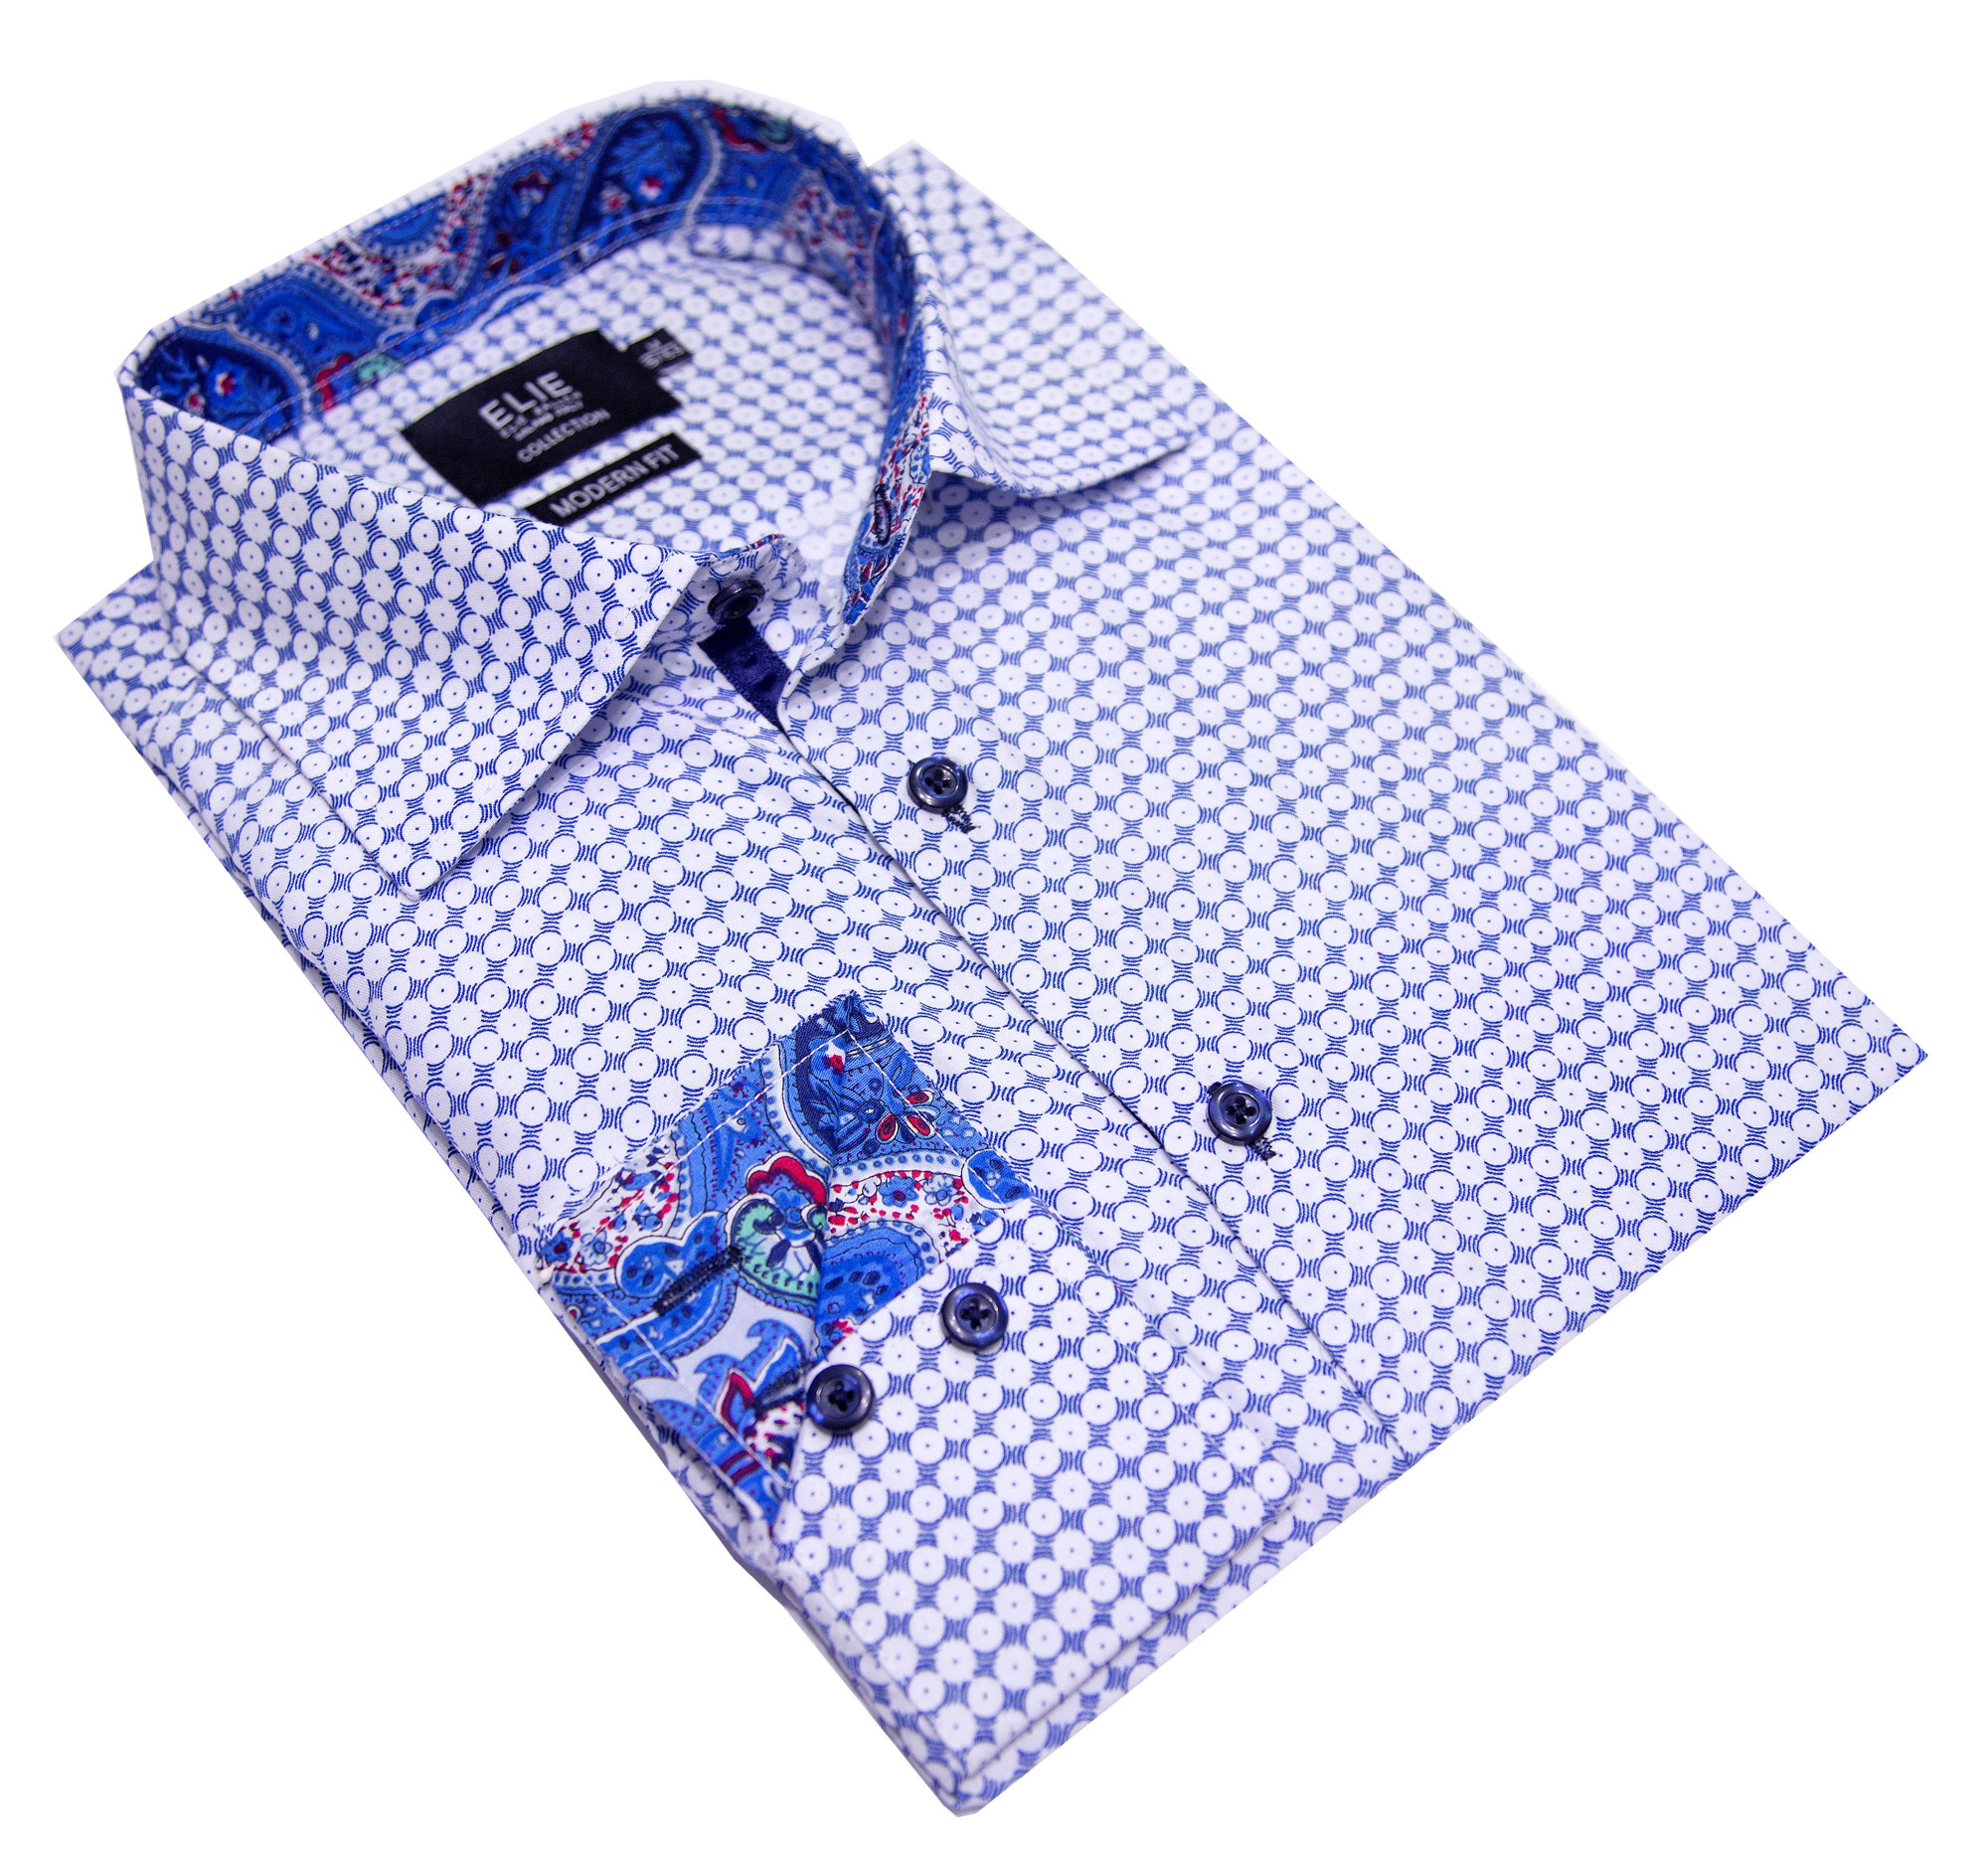 Blue&White Print Men's Shirts/Button Down CEBSH322M